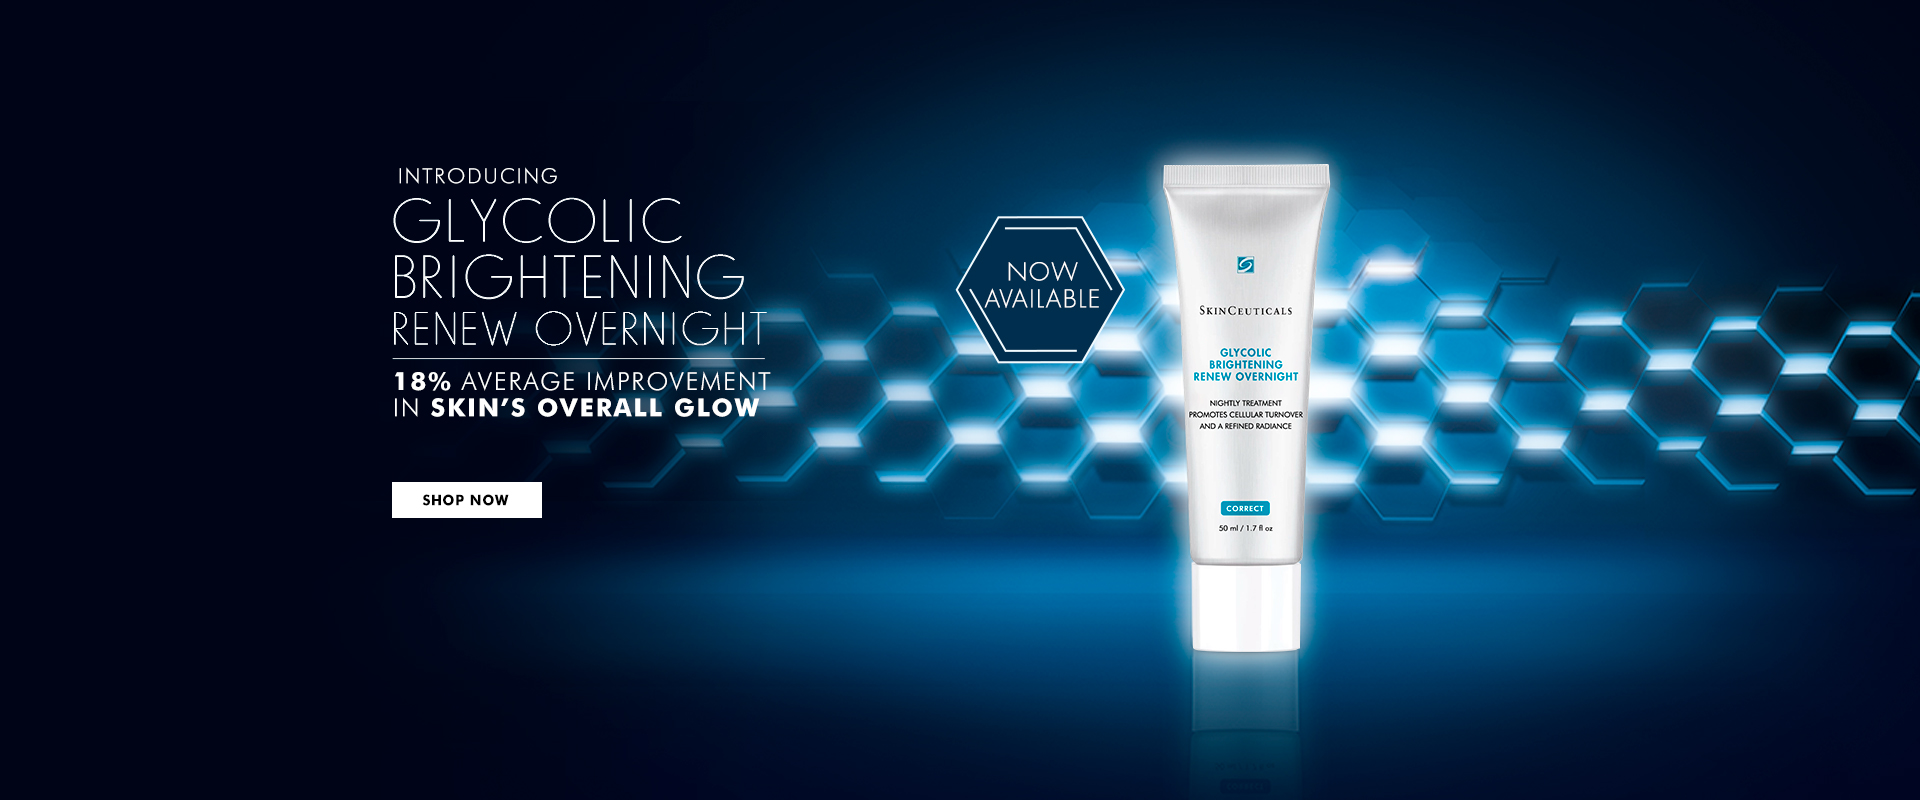 NEW Glycolic Brightening Renew Overnight